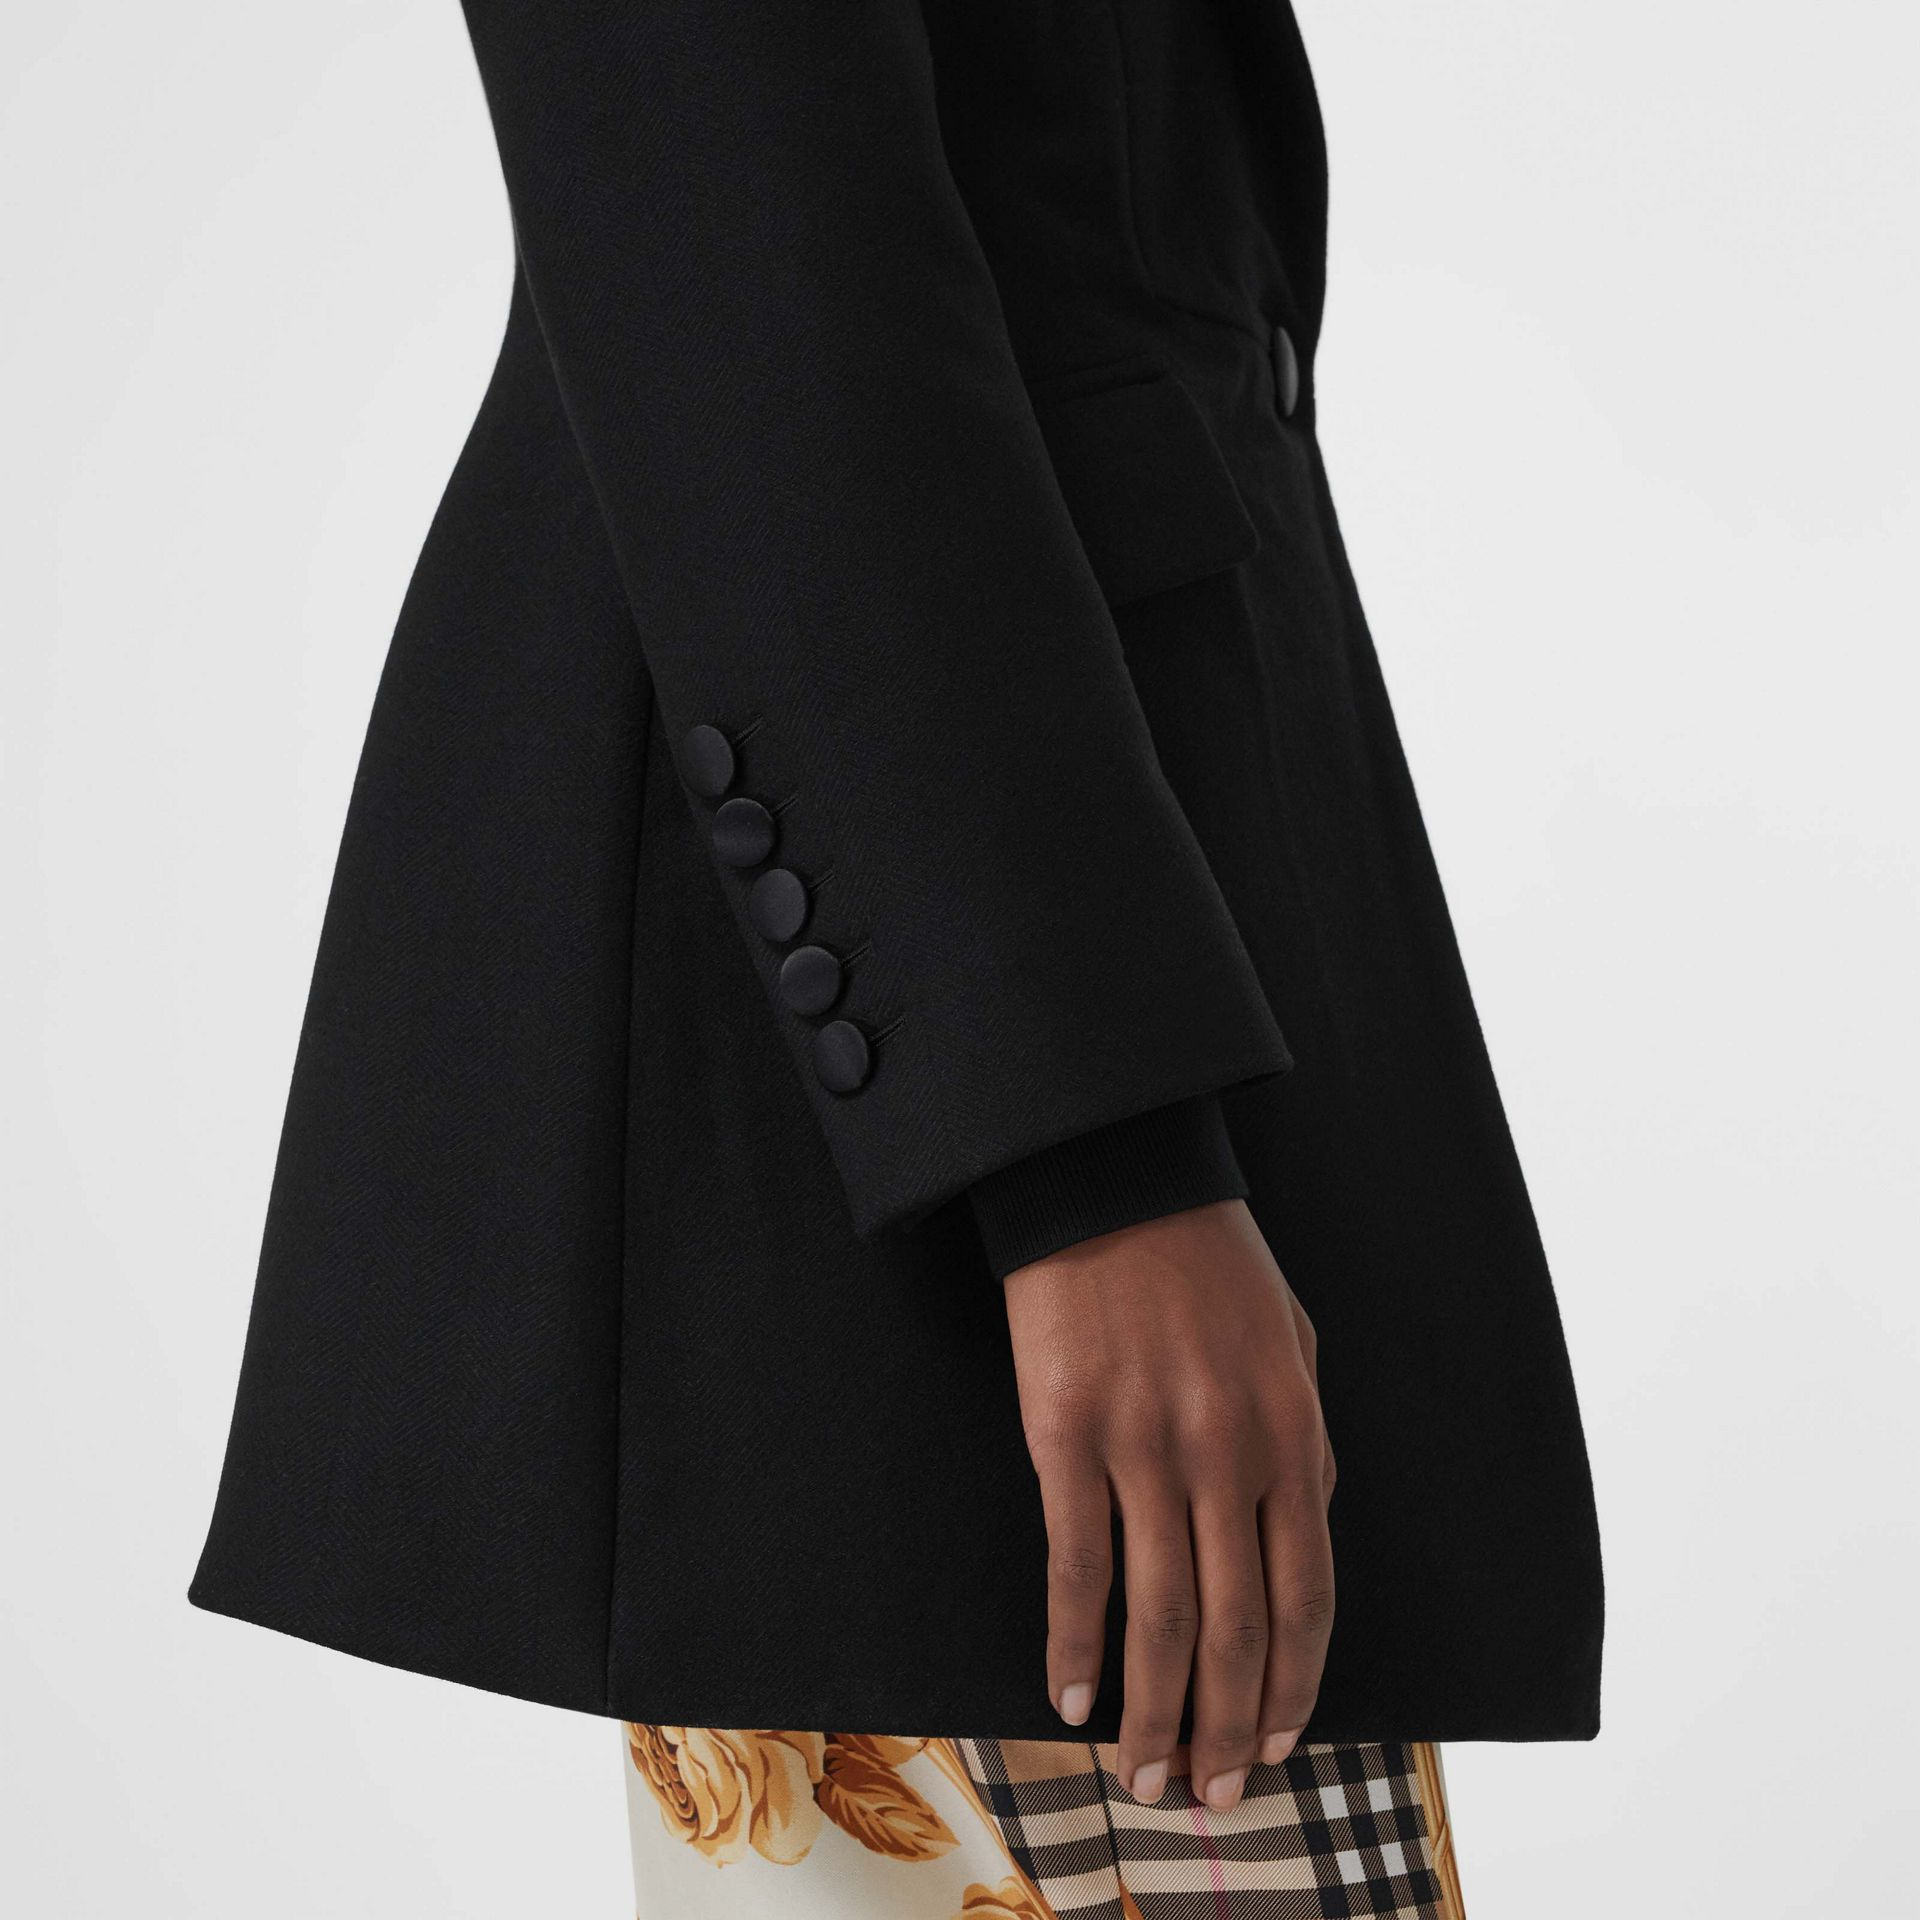 Herringbone Wool Cashmere Blend Tailored Jacket in Black - Women | Burberry - gallery image 1